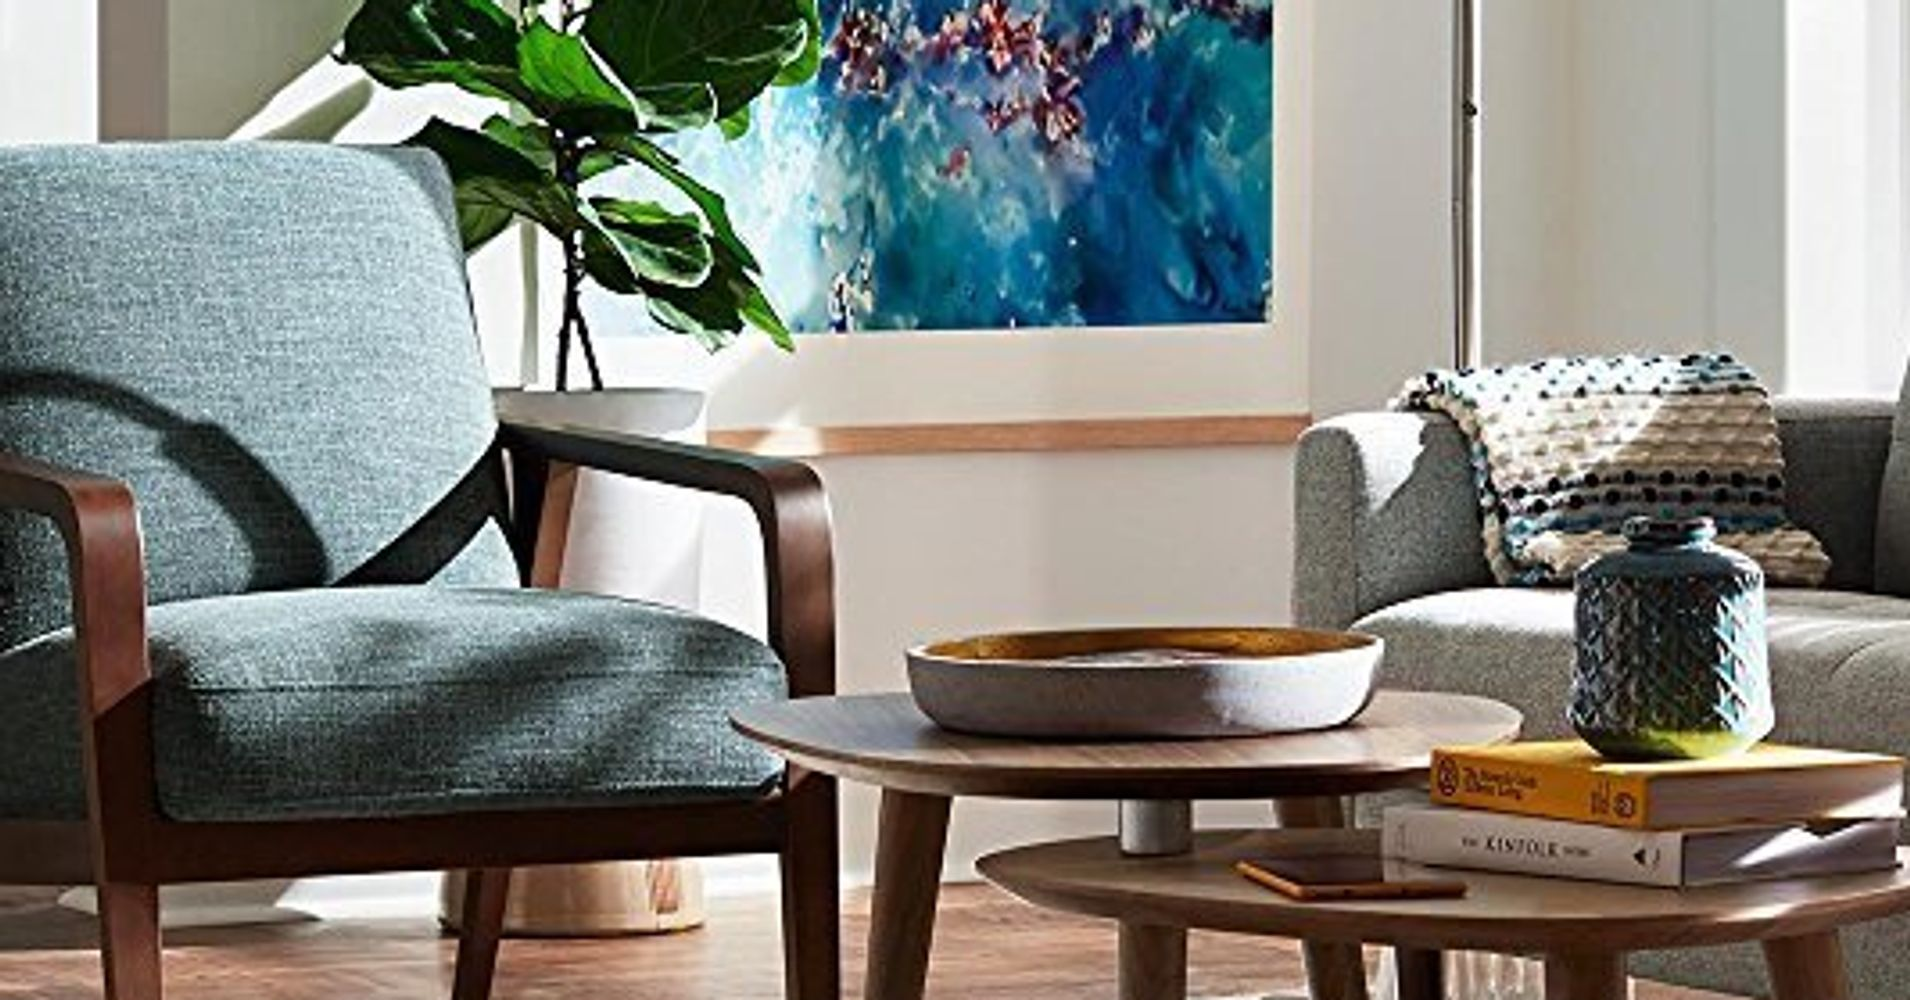 Furniture And Home Decor Deals To Shop This Amazon Prime